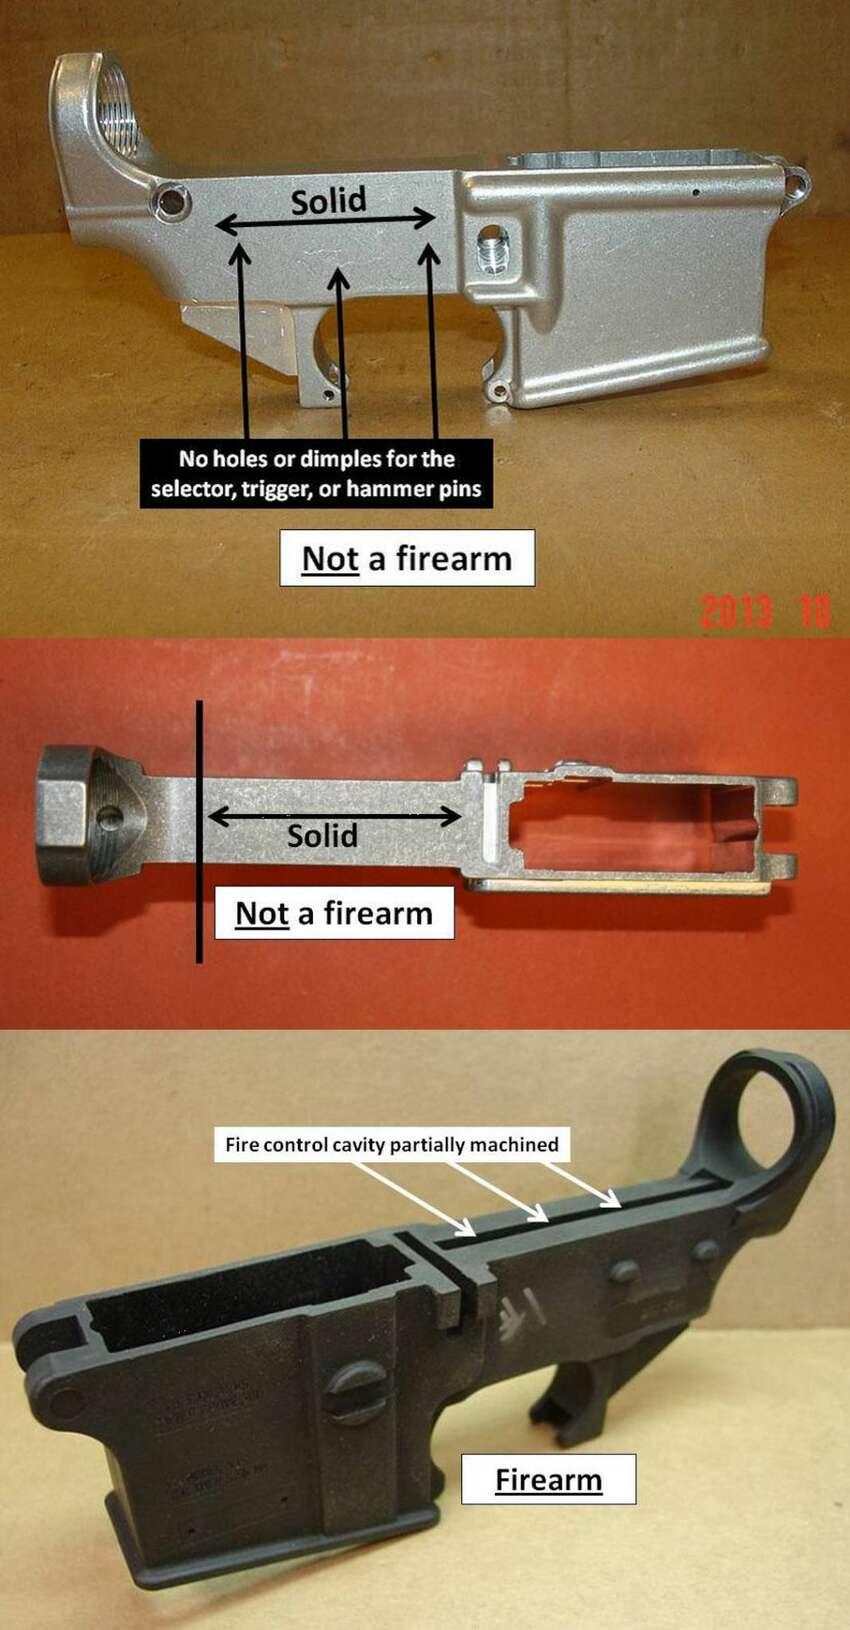 This image from the Bureau of Alcohol, Tobacco, Firearms and Explosives shows examples of a unfinished guns that are legally not considered a firearm, and one that would be considered a firearm.